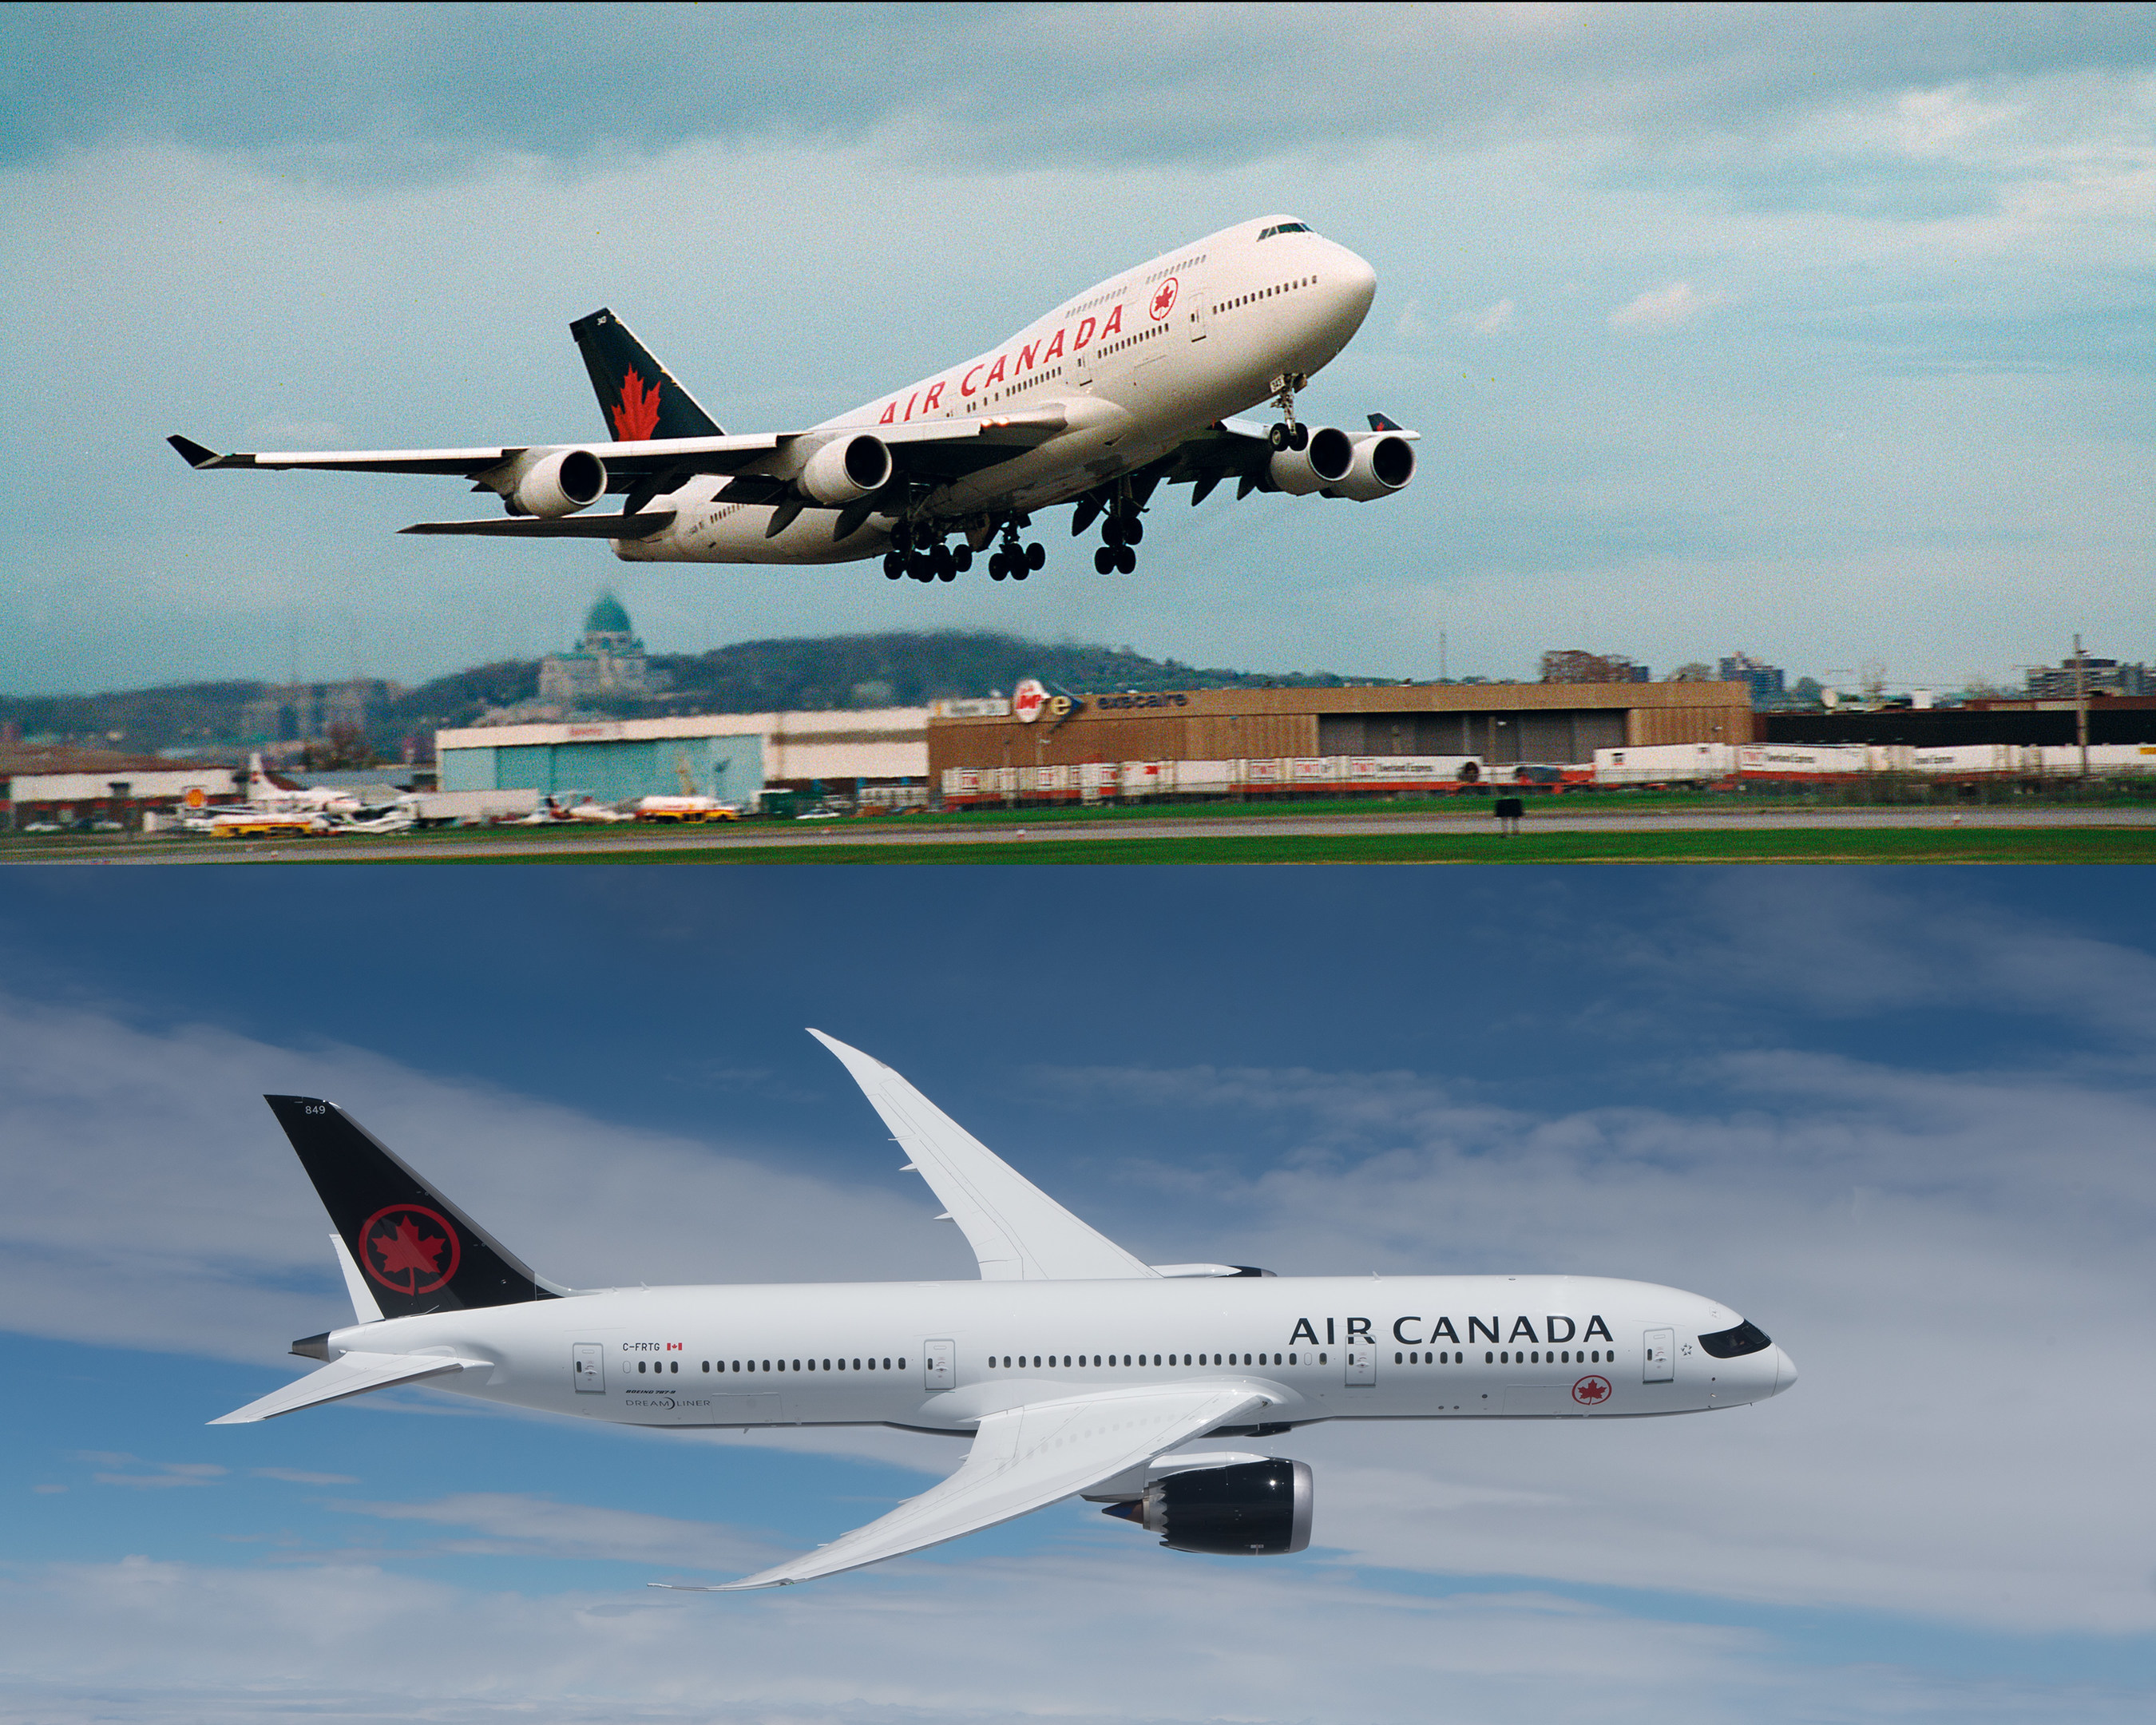 Air Canada launched service to Seoul in 1994 with the Boeing 747-Combi (top), a route that continues today with Boeing 777s and Boeing 787 Dreamliners (bottom). (CNW Group/Air Canada)